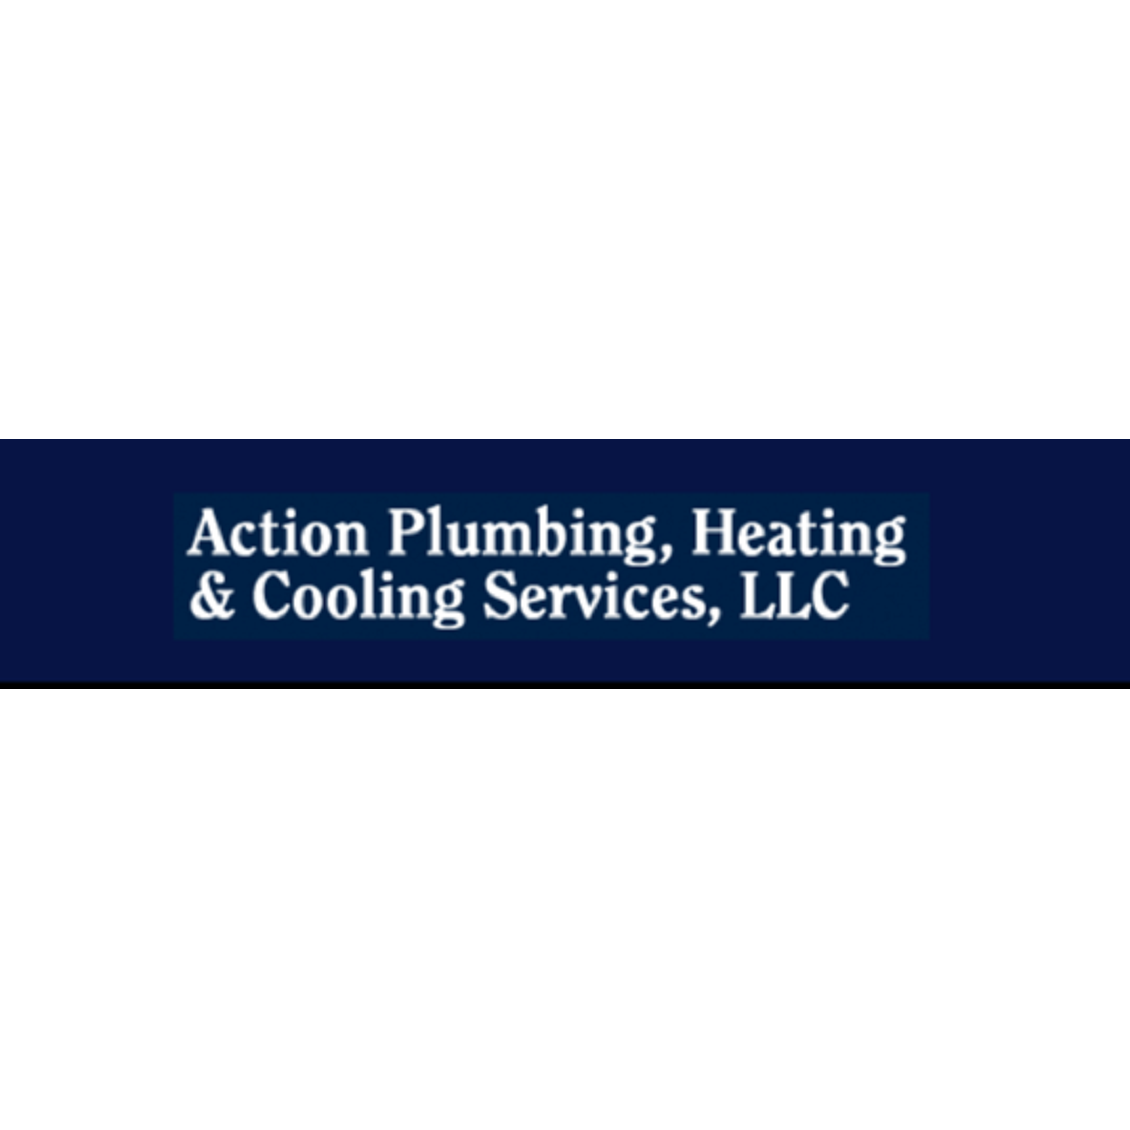 Action Plumbing, Heating & Cooling Services, LLC - Endicott, NY 13760 - (607)205-1177 | ShowMeLocal.com